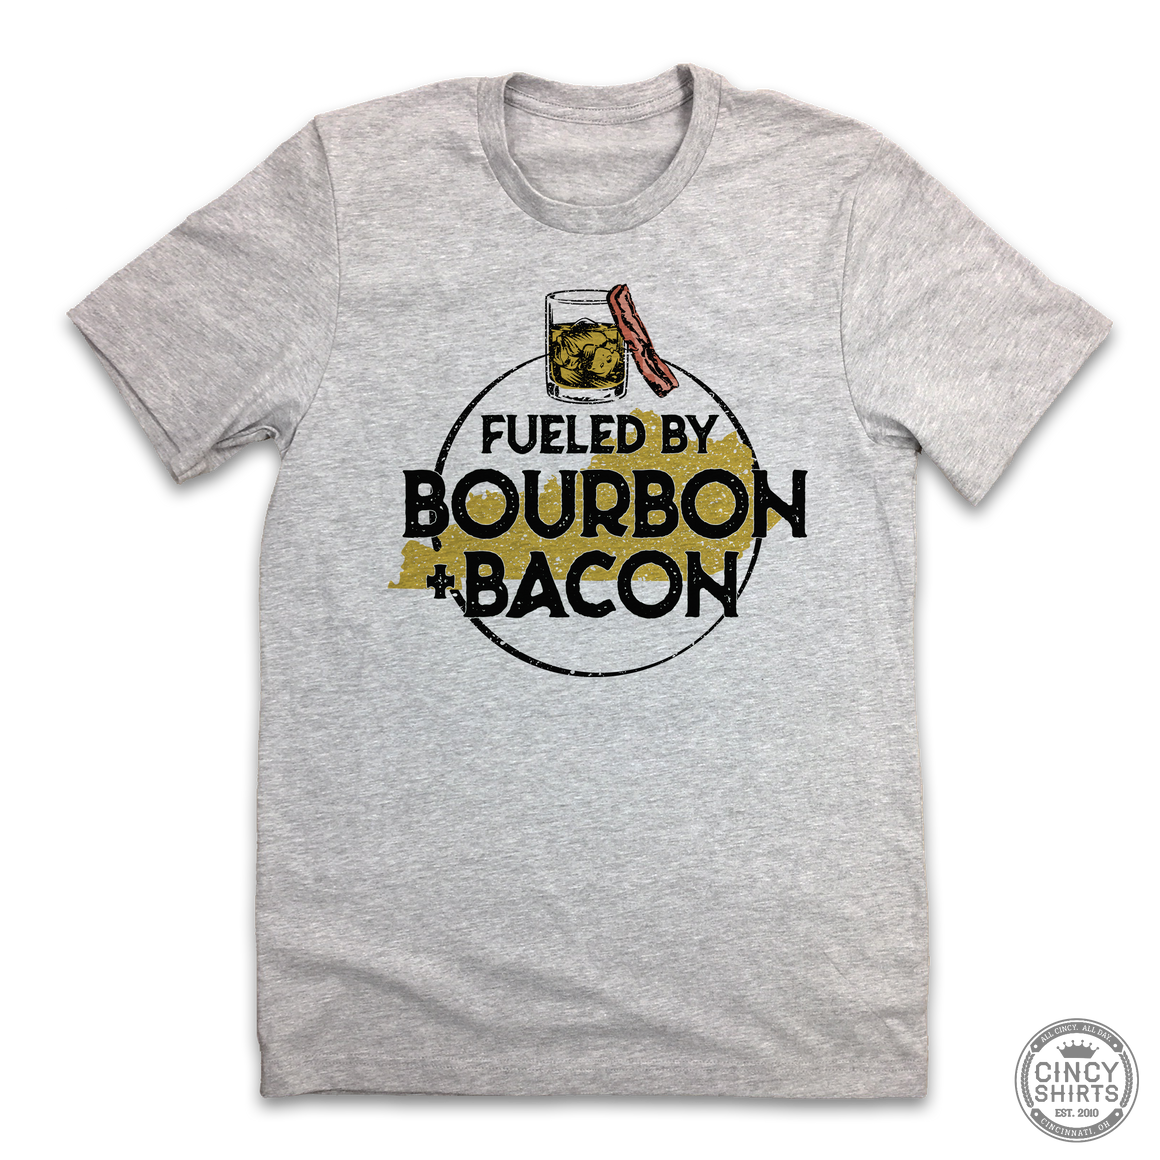 Fueled By Bourbon & Bacon - Cincy Shirts